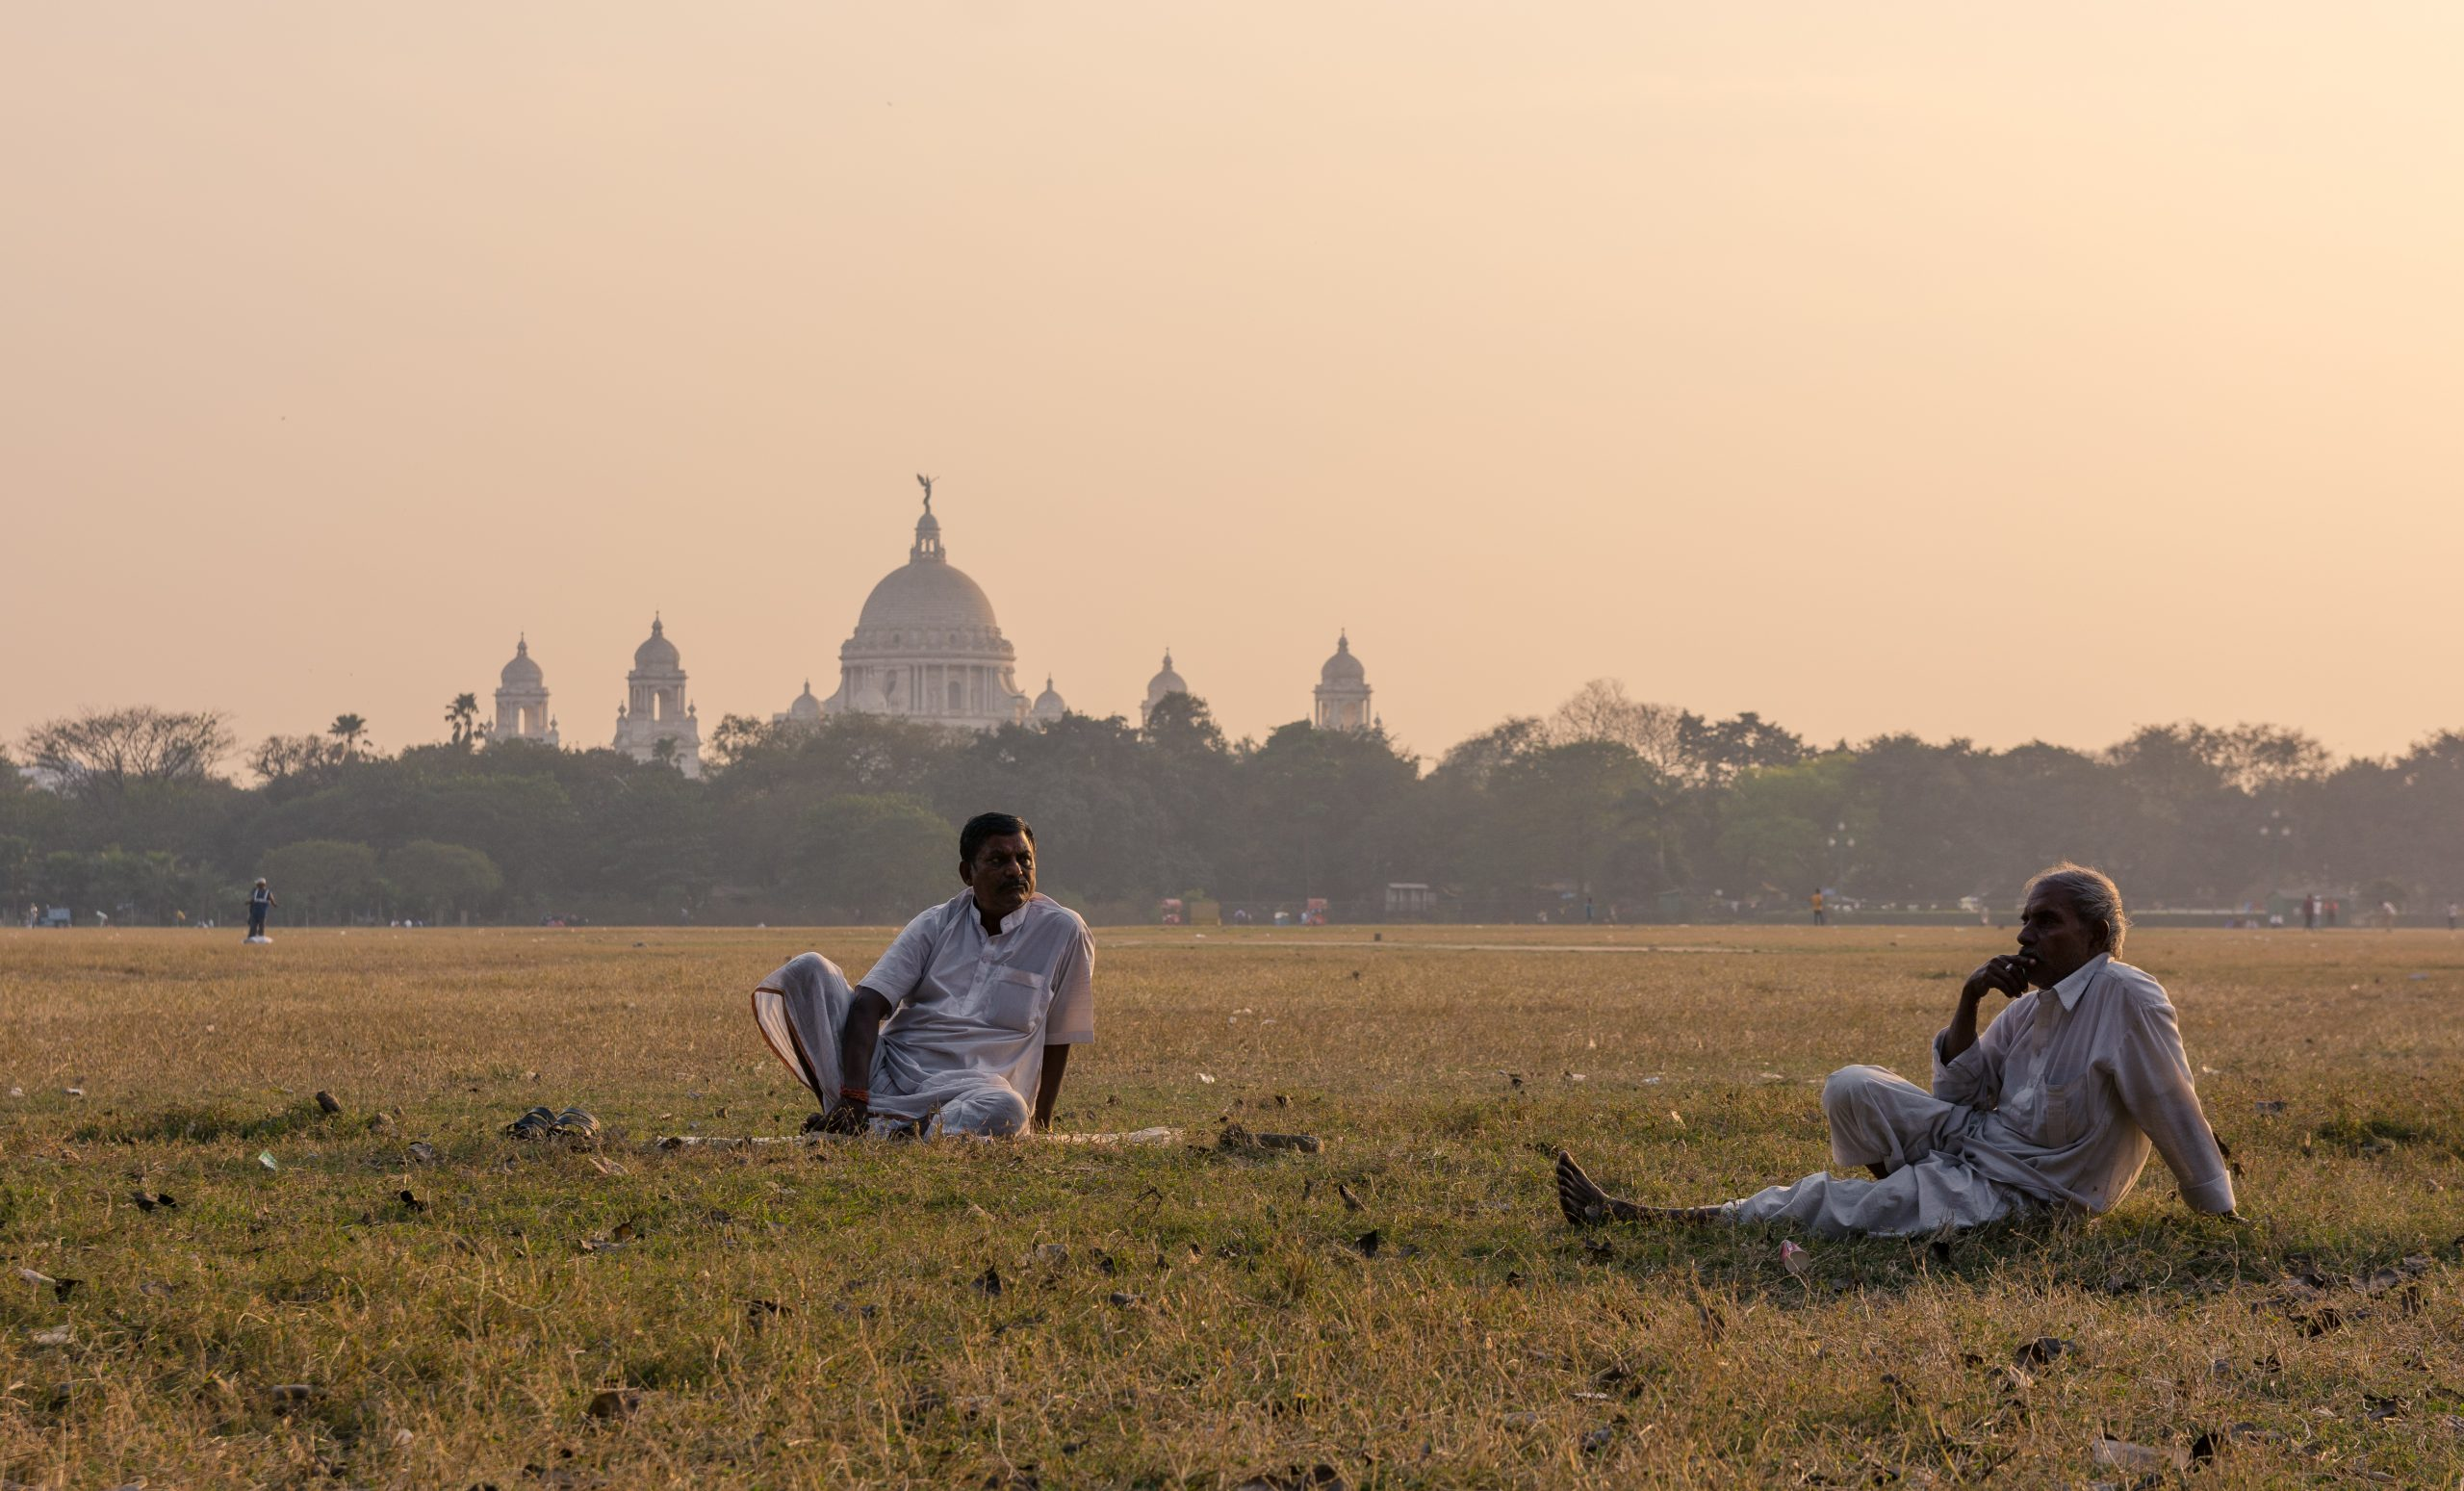 People sitting in ground